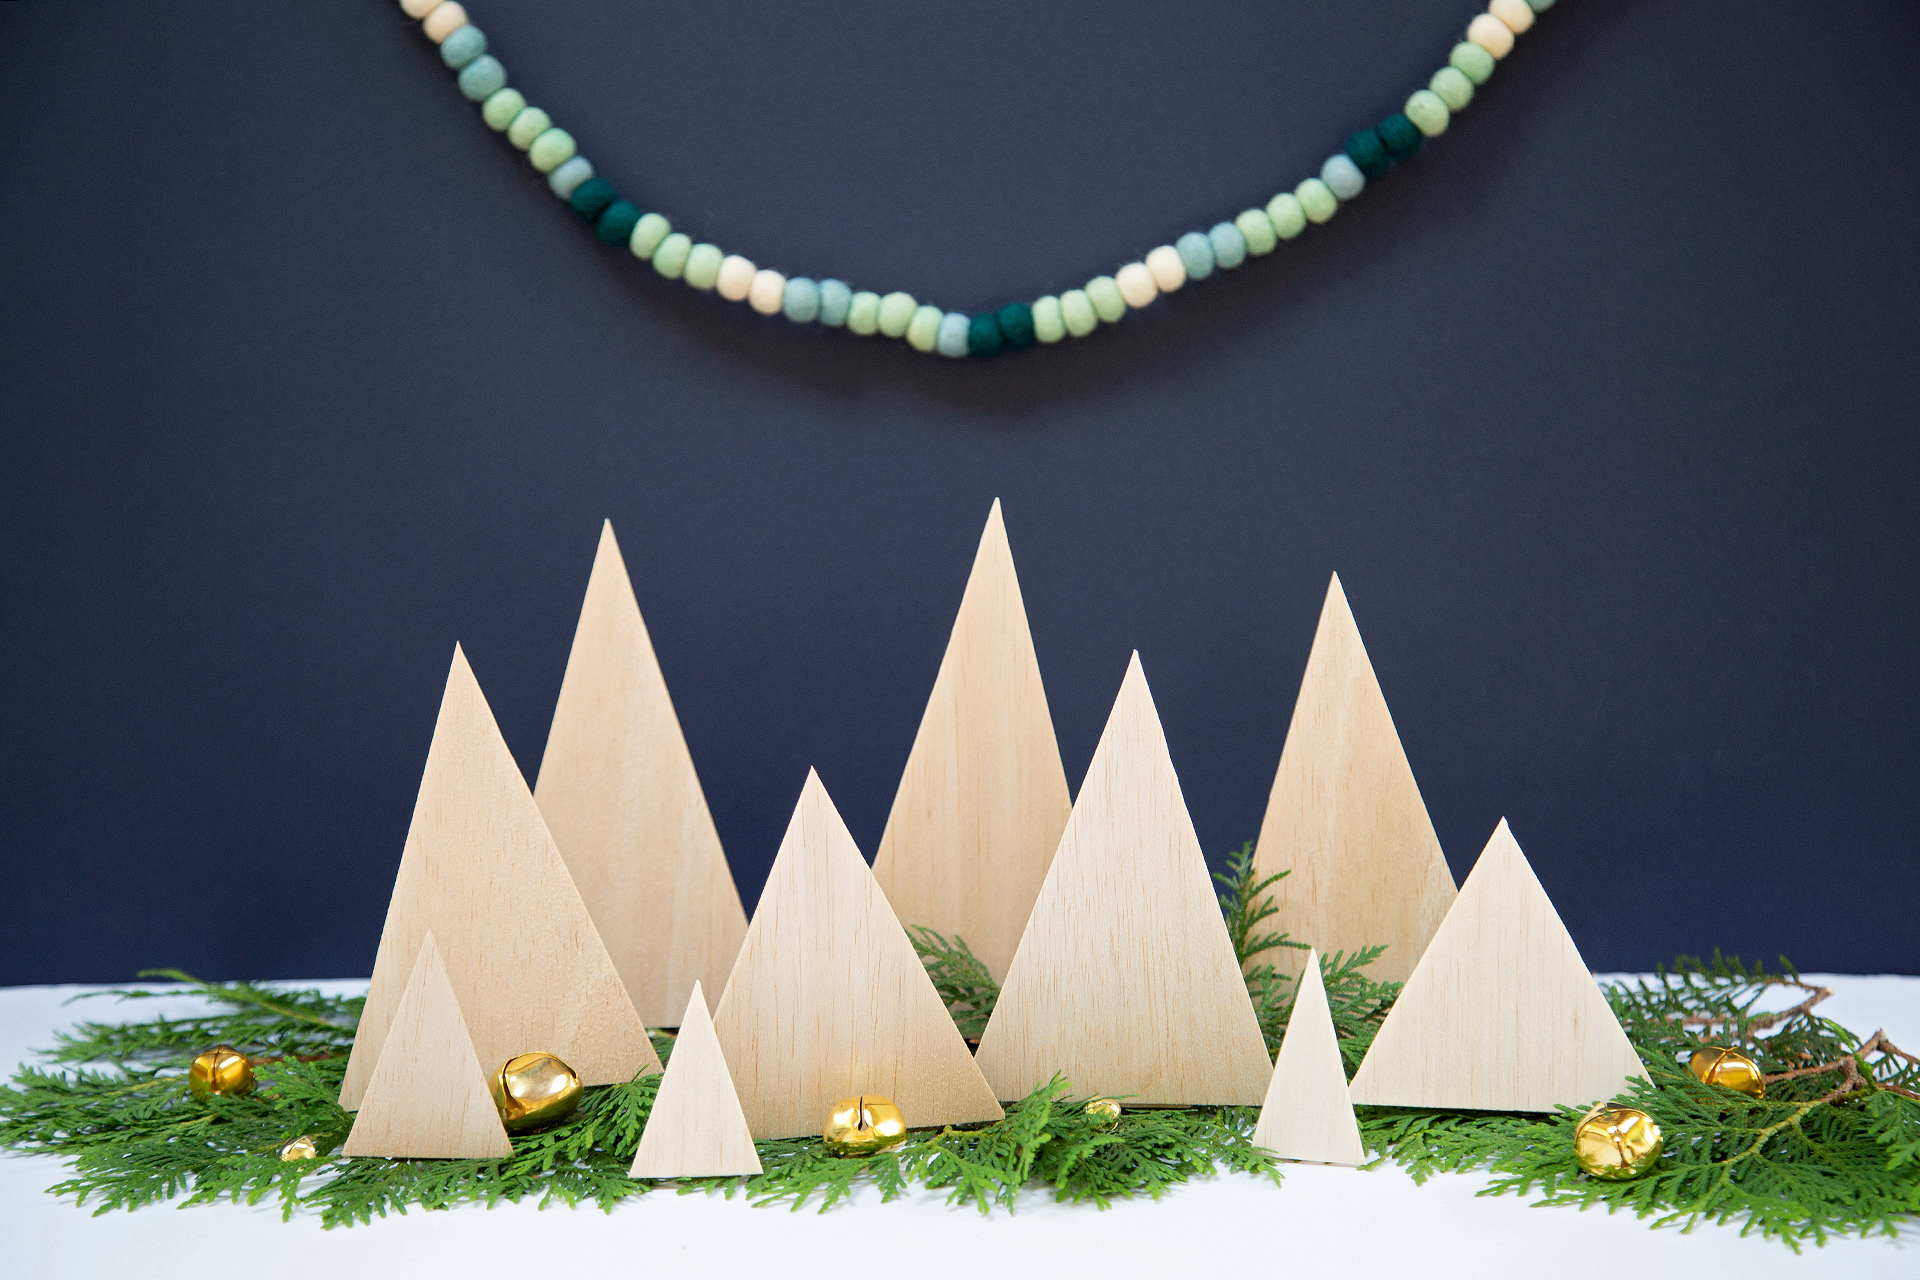 Make a DIY Wood Christmas Tree Village